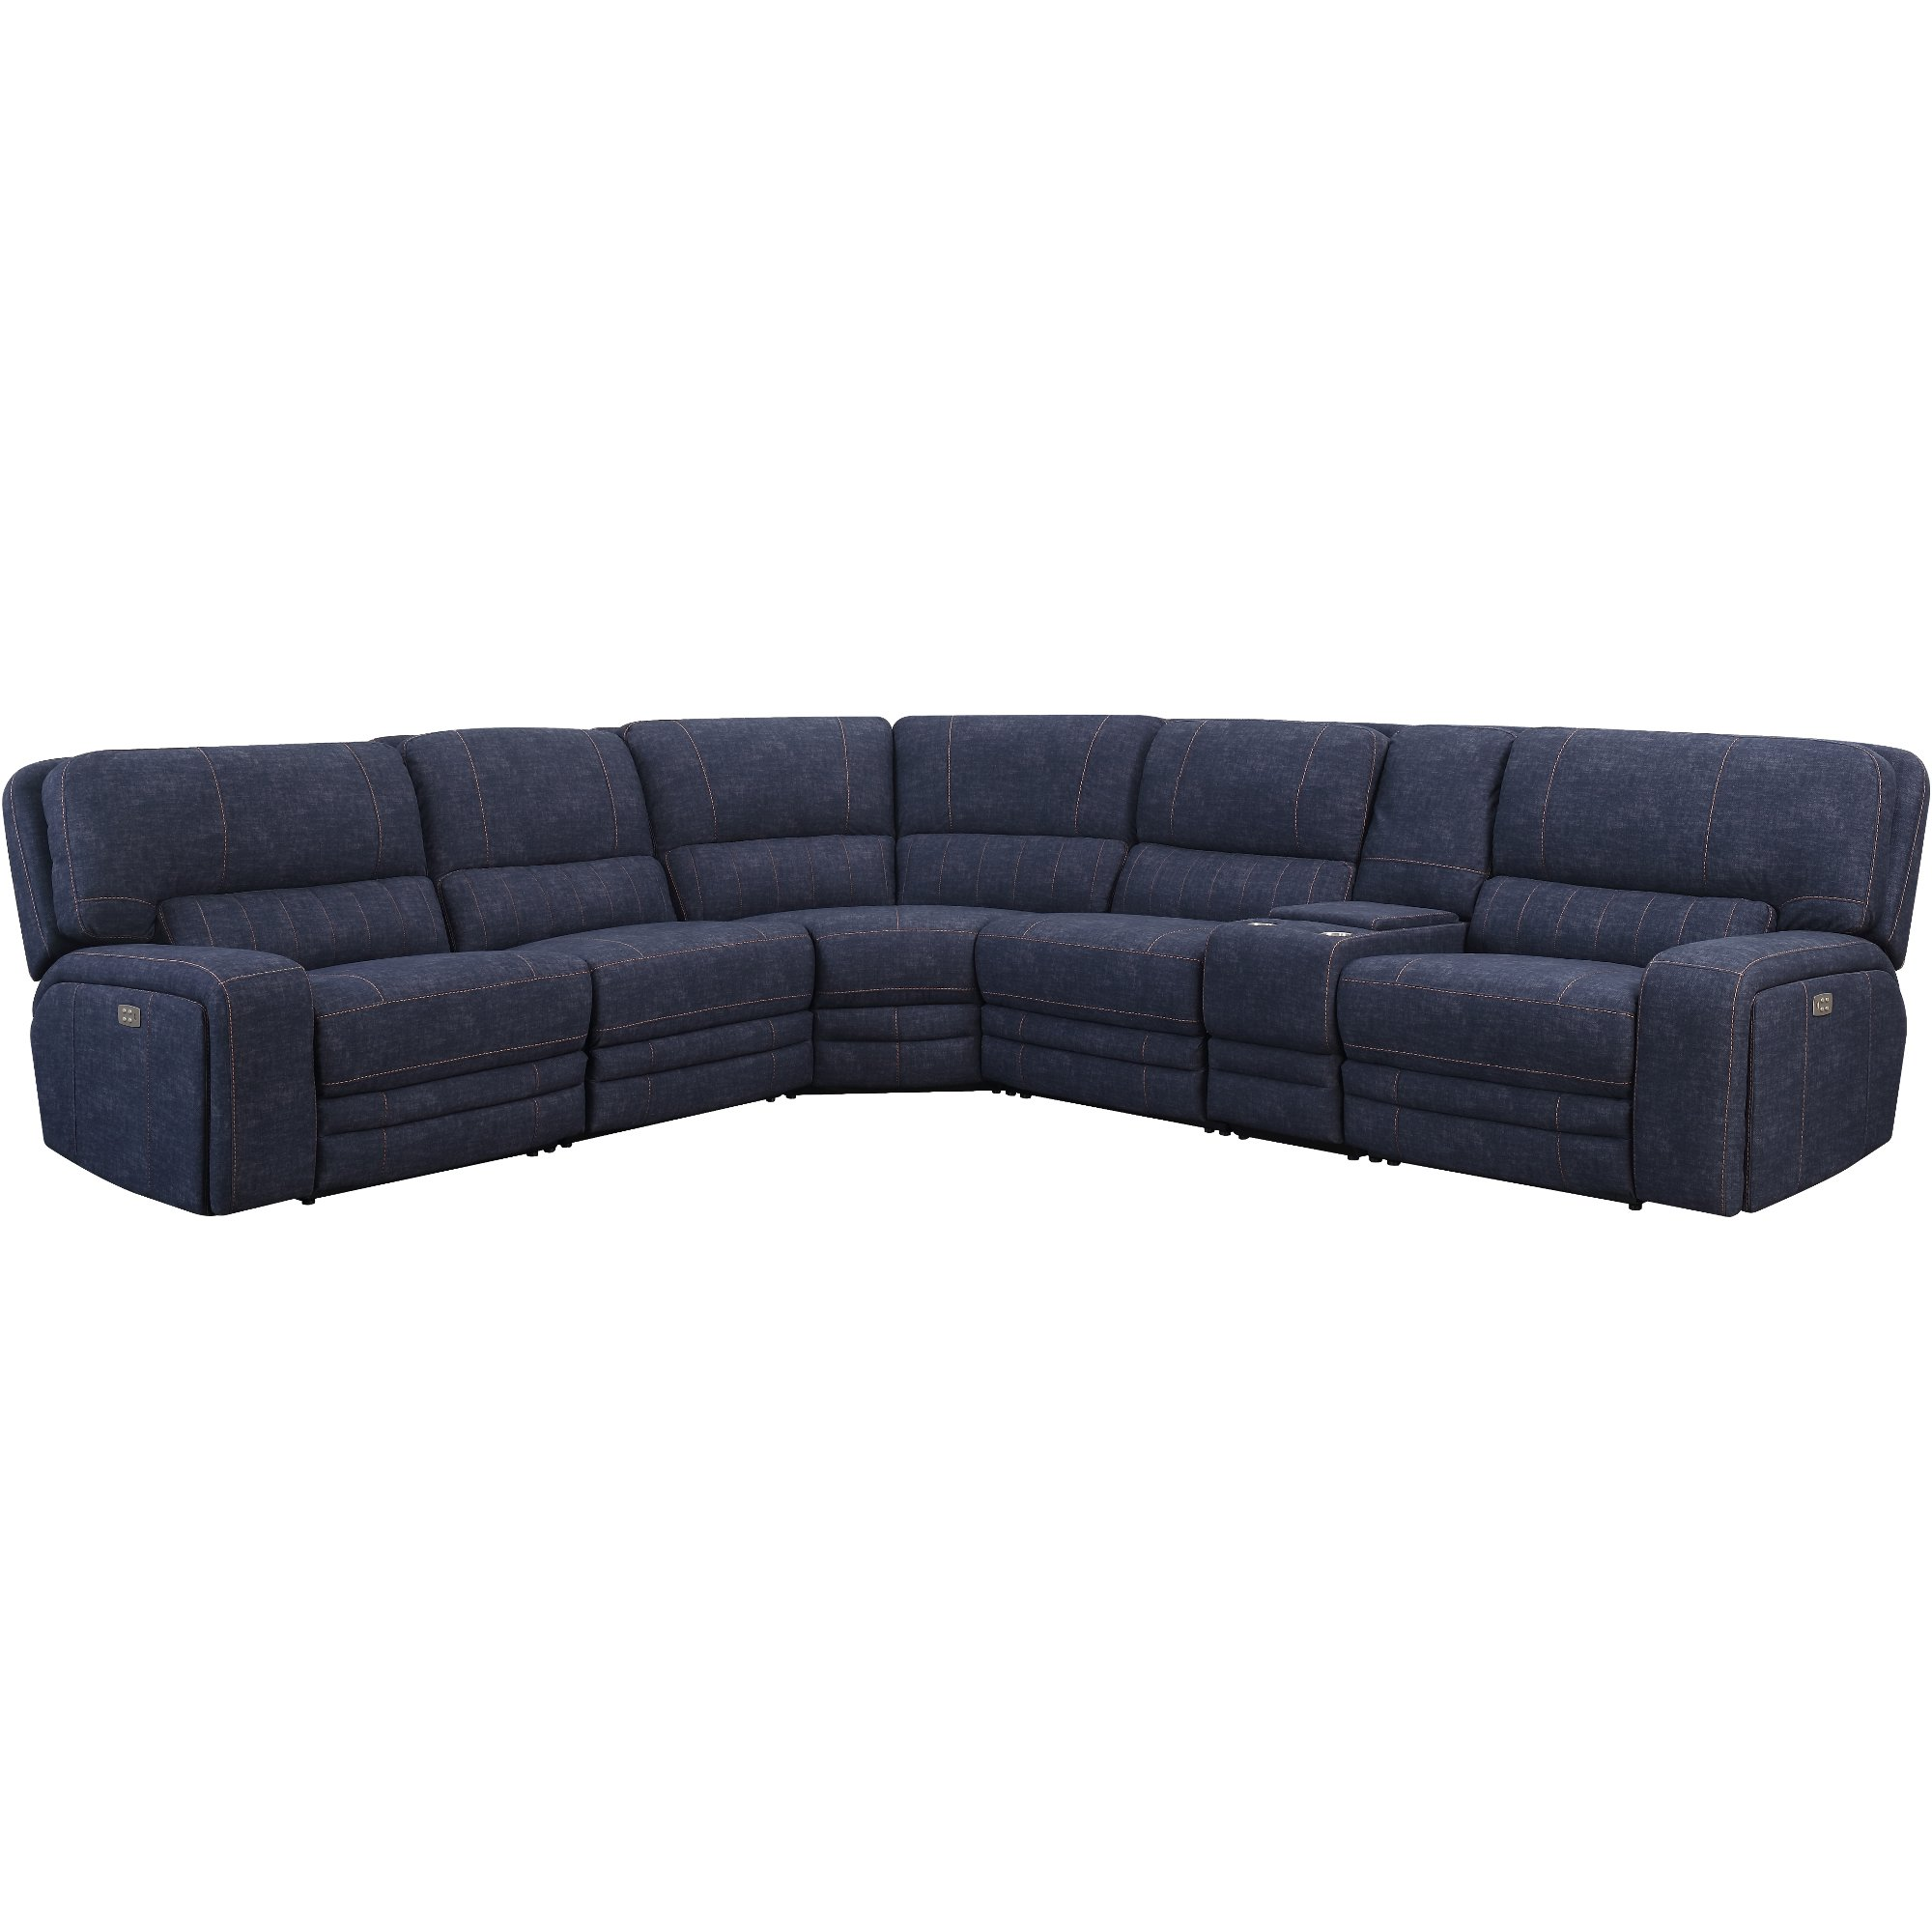 Indigo Blue 6 Piece Reclining Sectional Sofa Rock Quarry